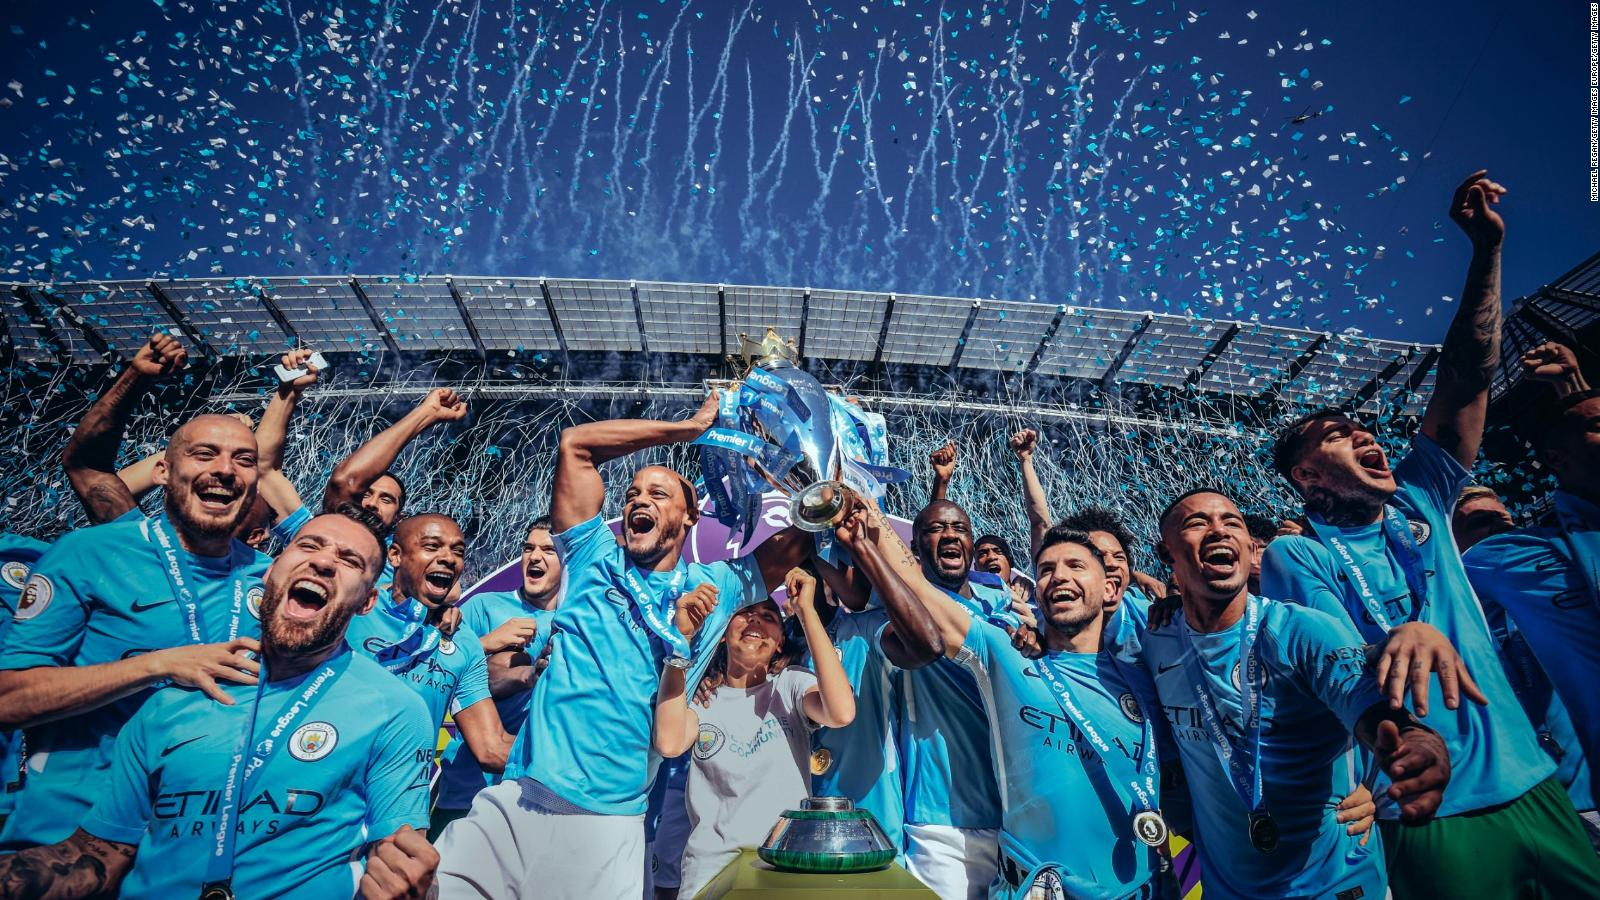 Manchester City s Champions League Future At Risk As UEFA Investigates Possible Financial Violations CNN